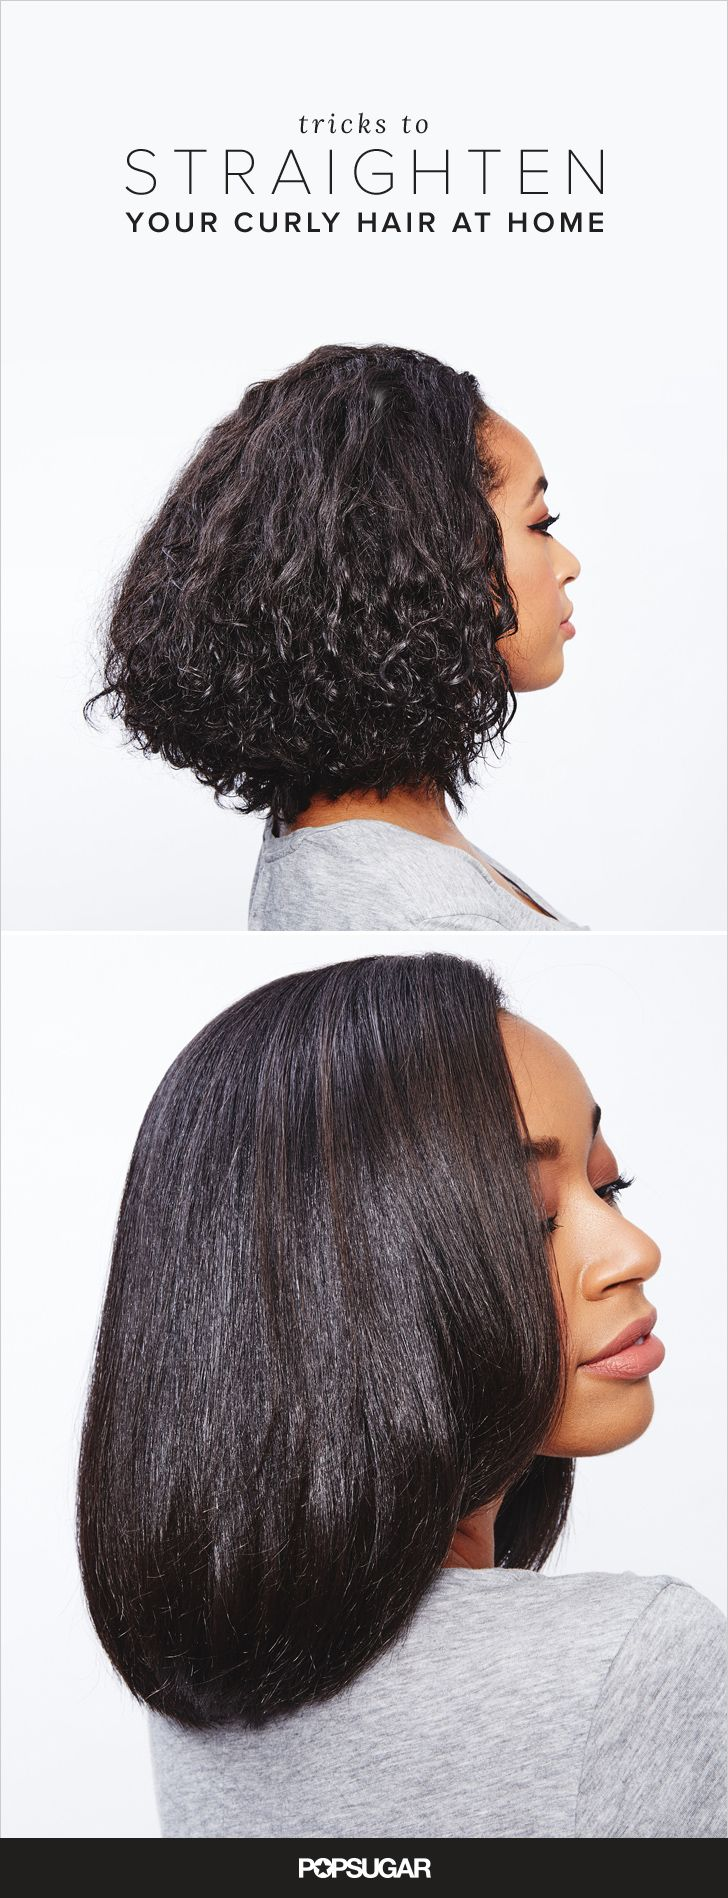 10 Major Mistakes You Re Making When You Try To Straighten Curls Curly Hair Styles Straightening Natural Hair Flat Iron Hair Styles